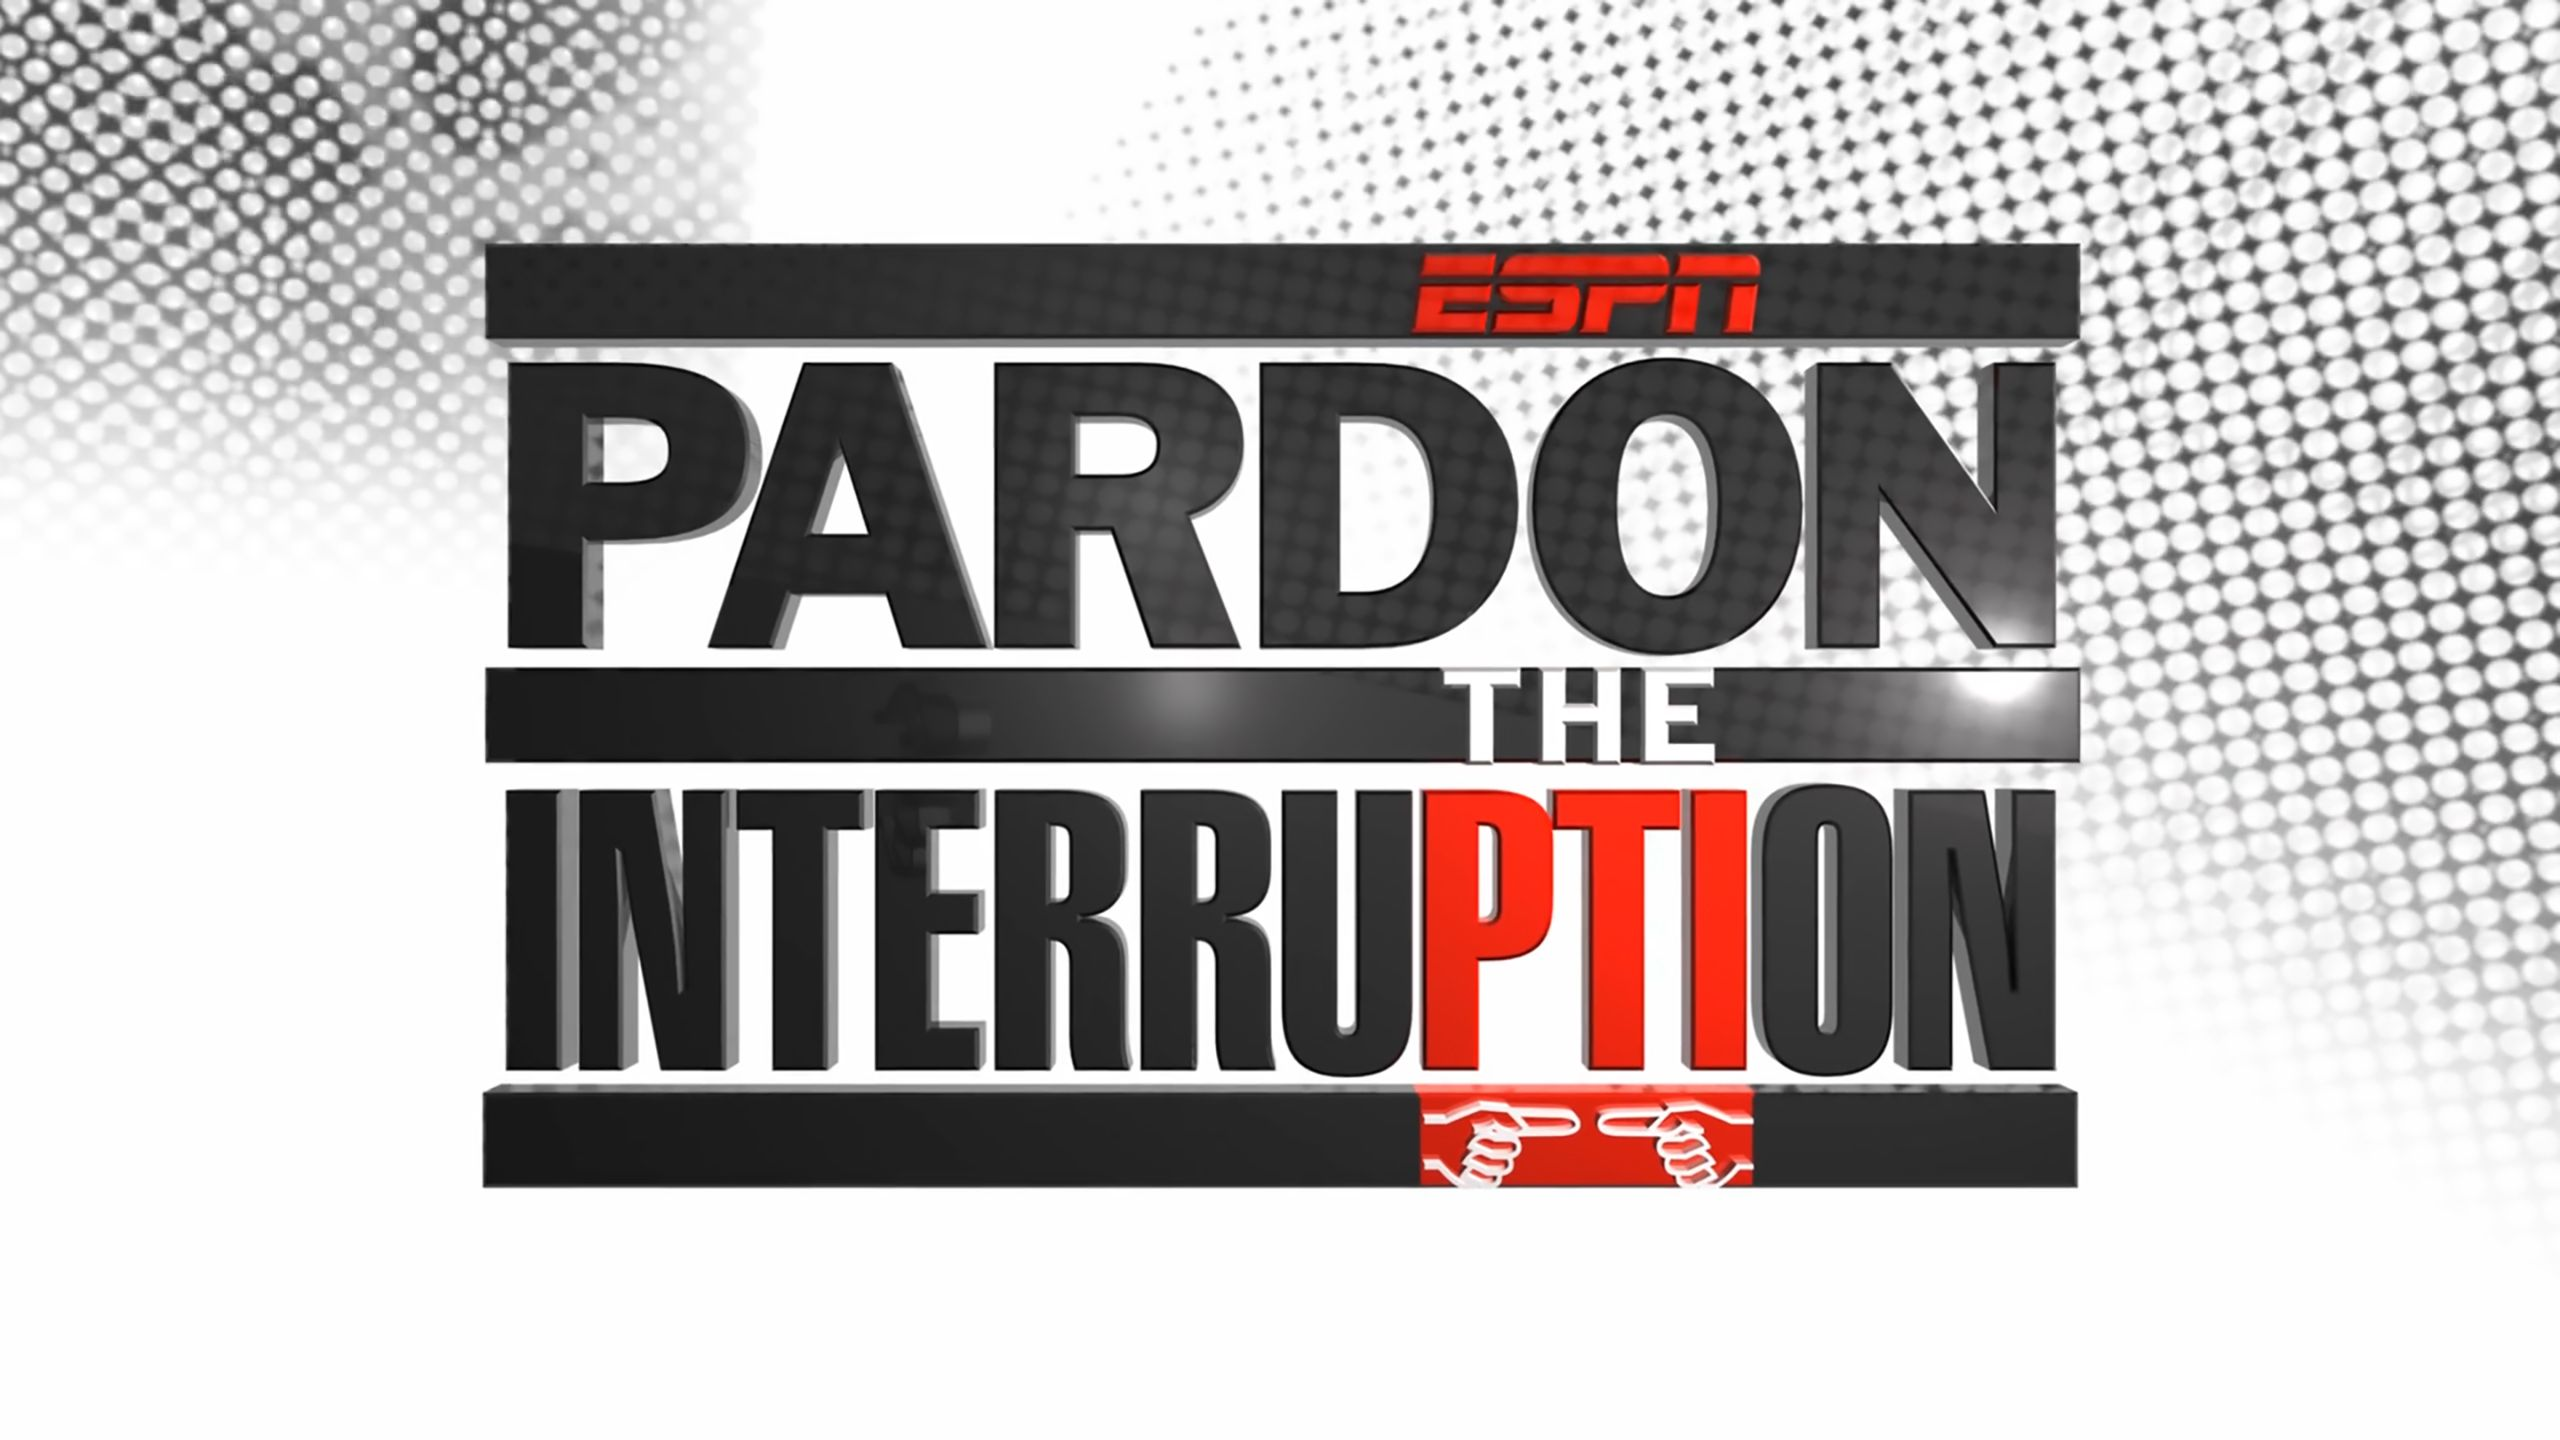 Fri, 7/20 - Pardon The Interruption